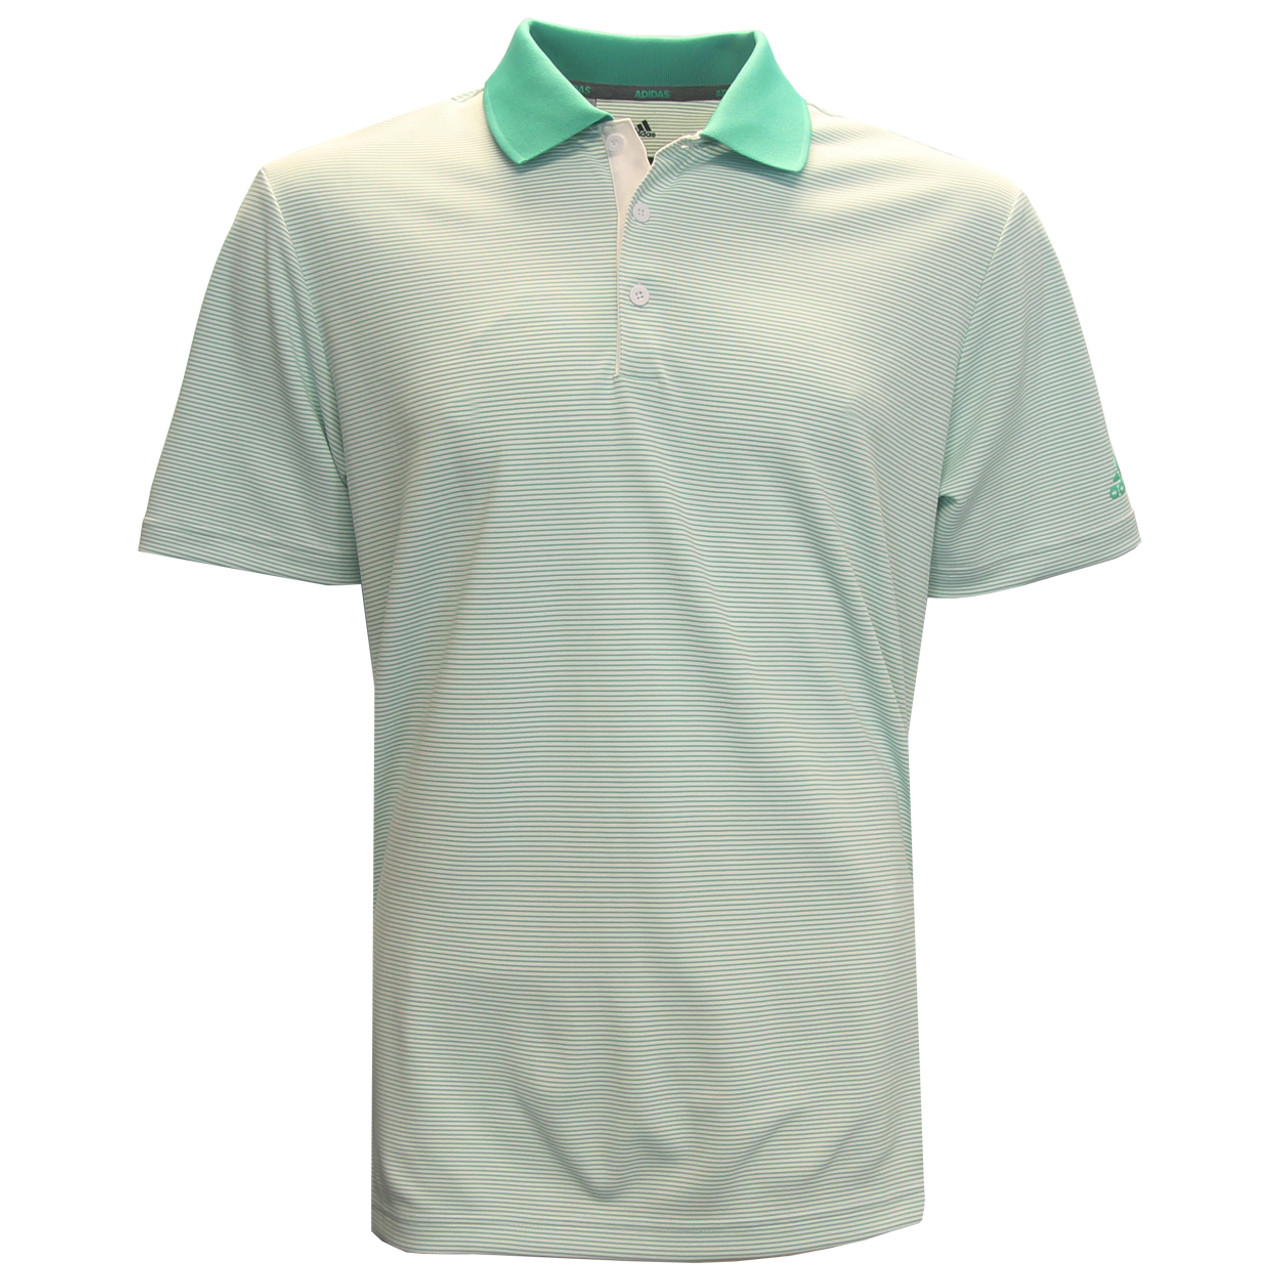 adidas polo golf shirt